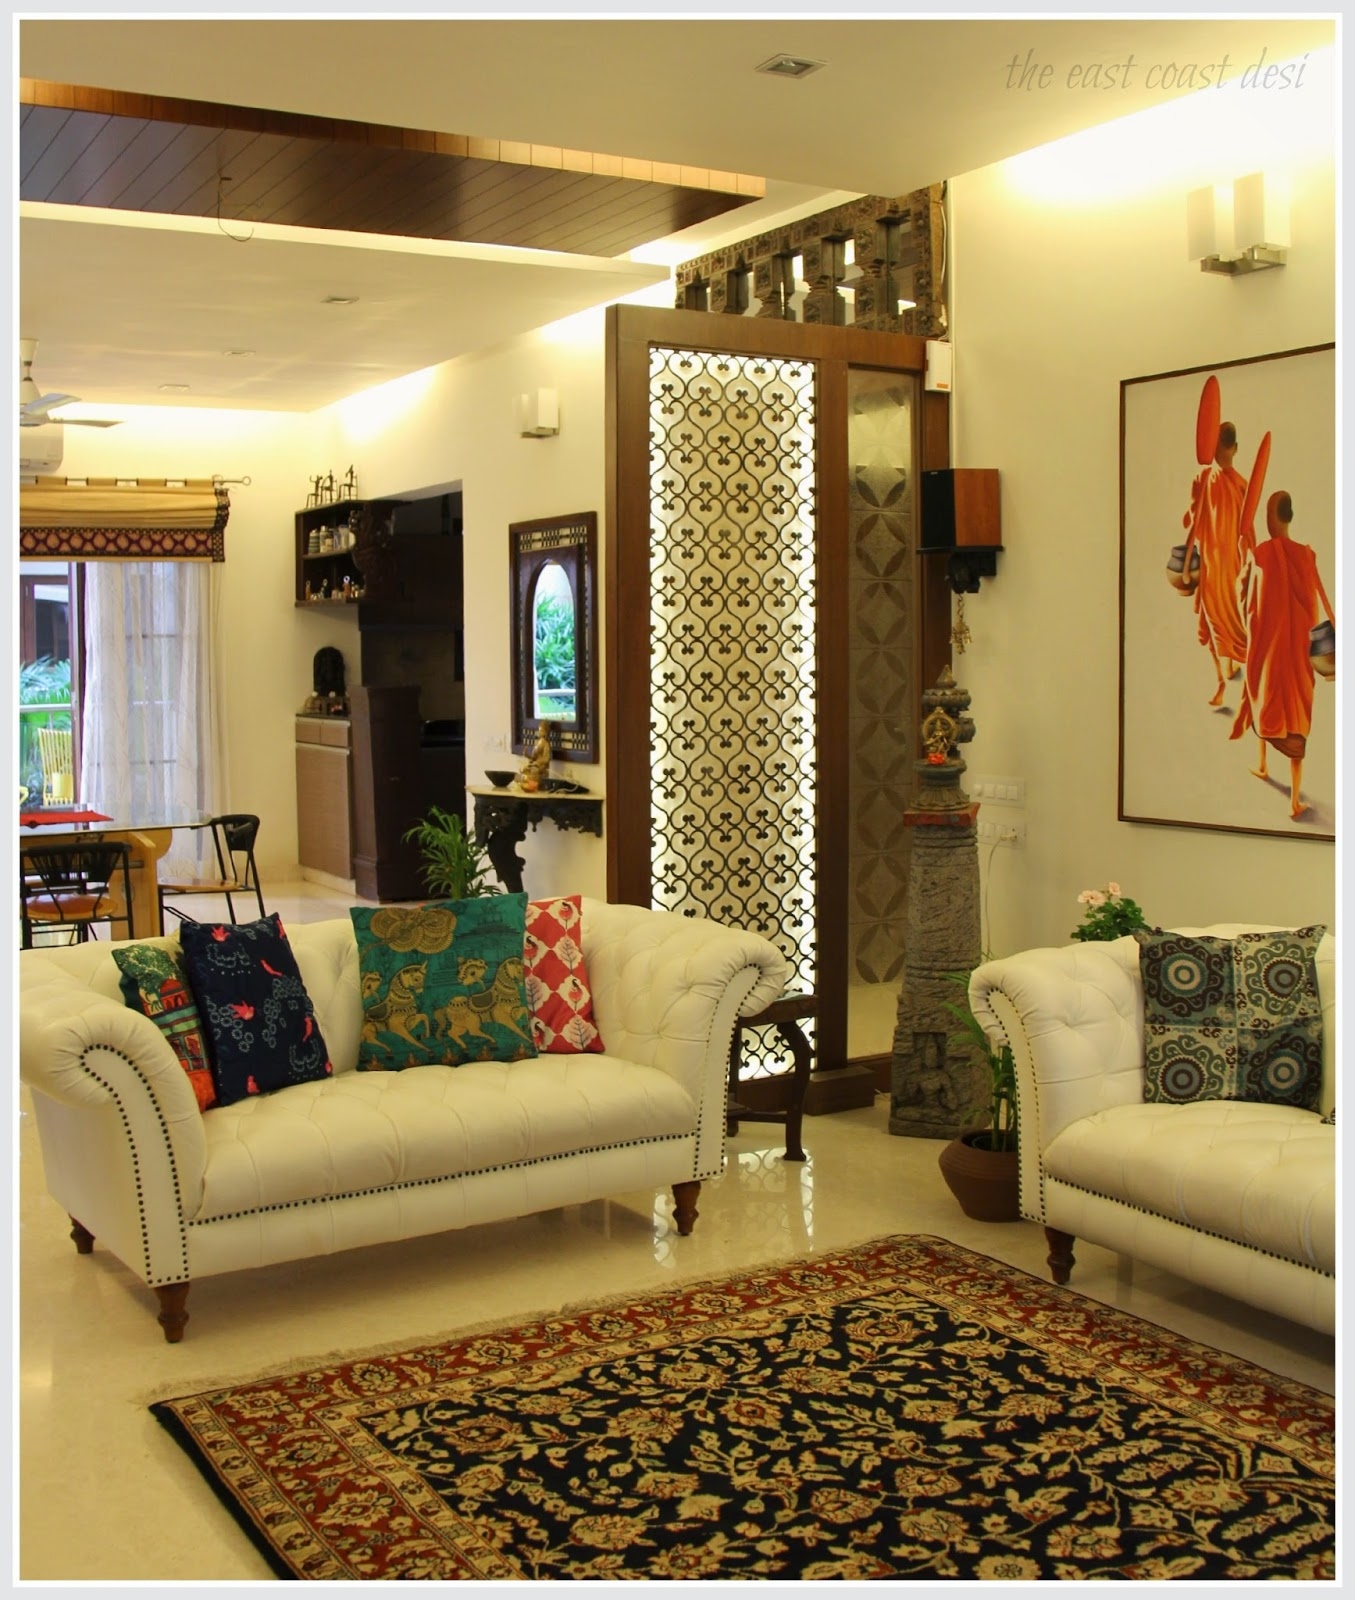 The east coast desi masterful mixing home tour for Home interior design ideas india